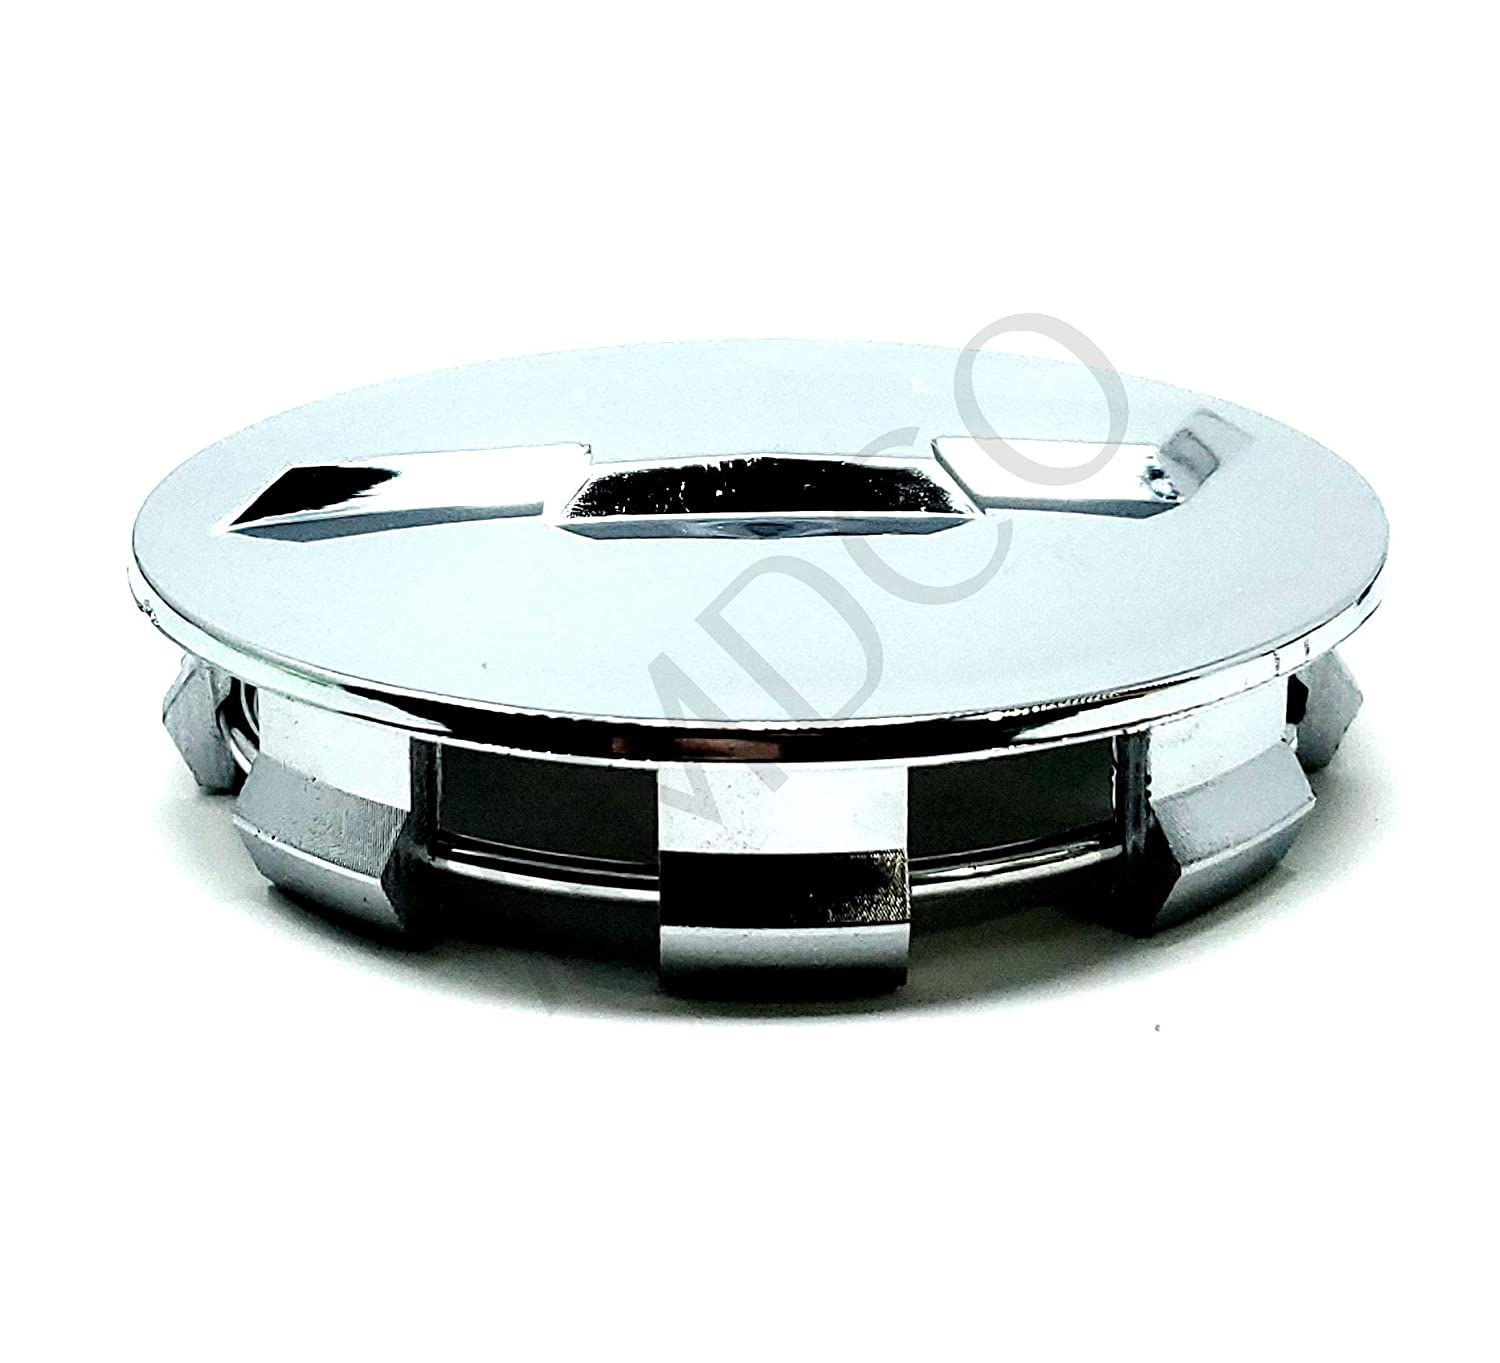 AMDCO Pack of 4 83MM CHROME CENTER CAP HUB SET For CHEVROLET etc Emblem Badge Stickers Decals Fender Rear Front Hood Side Crest Body with Strong 3M Includes instructions MEASURE Before Purchase